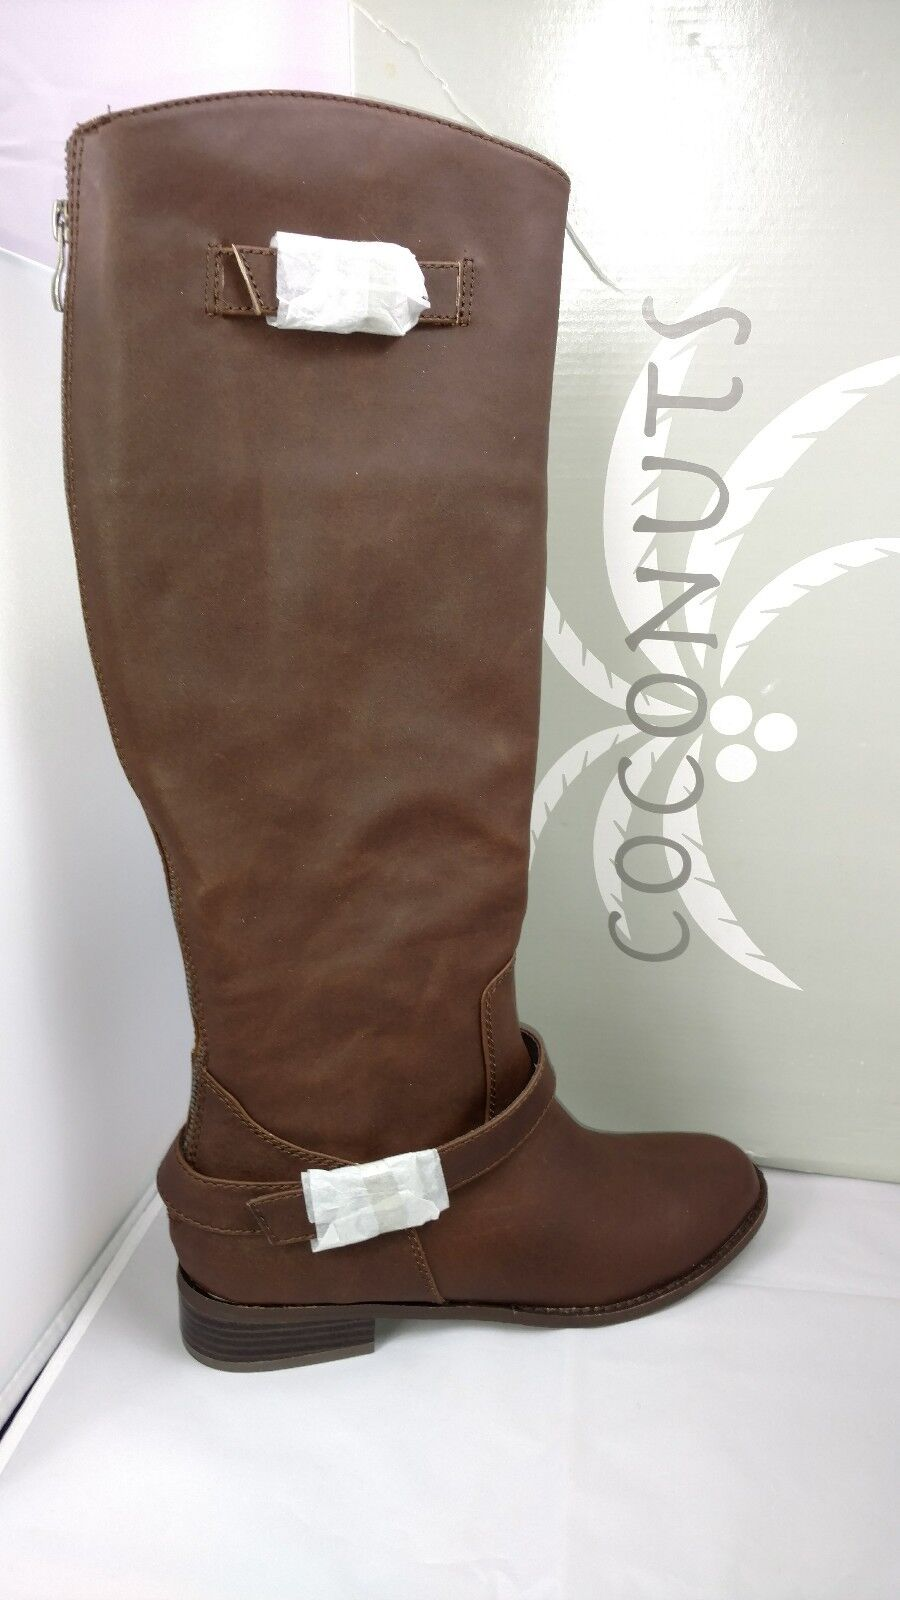 New Coconuts Plaza Brown Faux Leather Vegan Knee High Riding Boots Women's 8 M